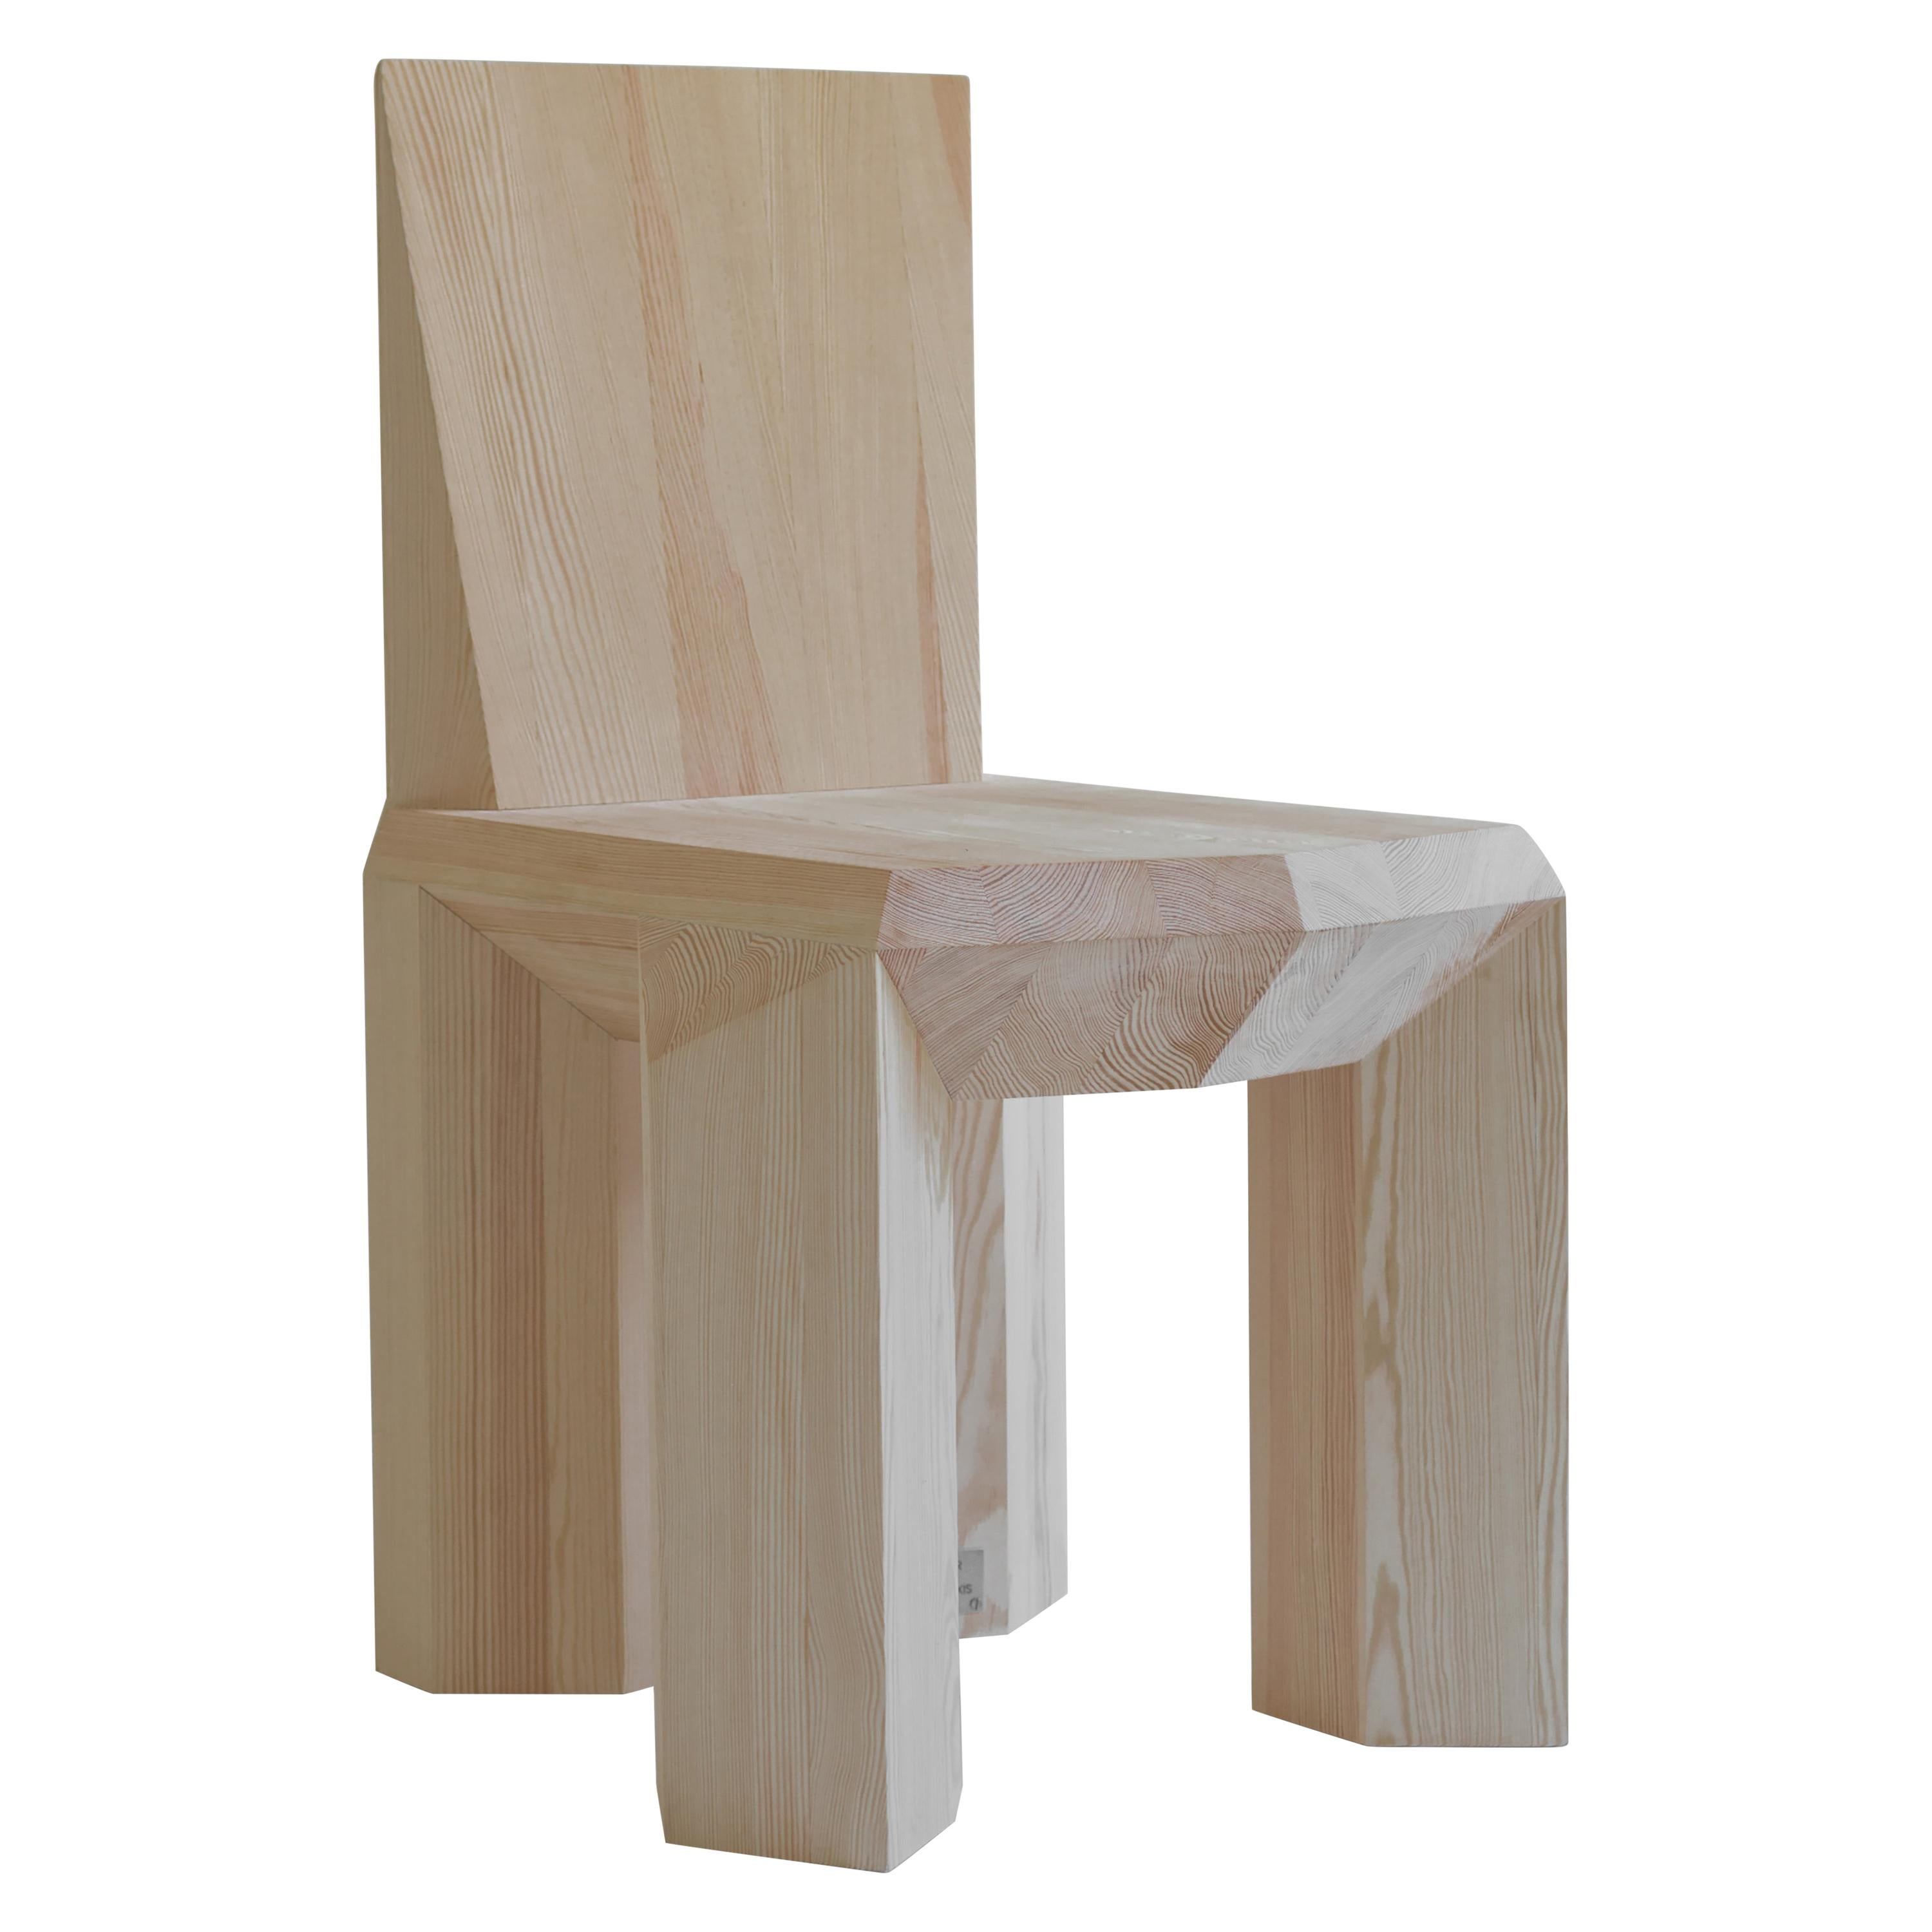 Ode Chair by Sizar Alexis